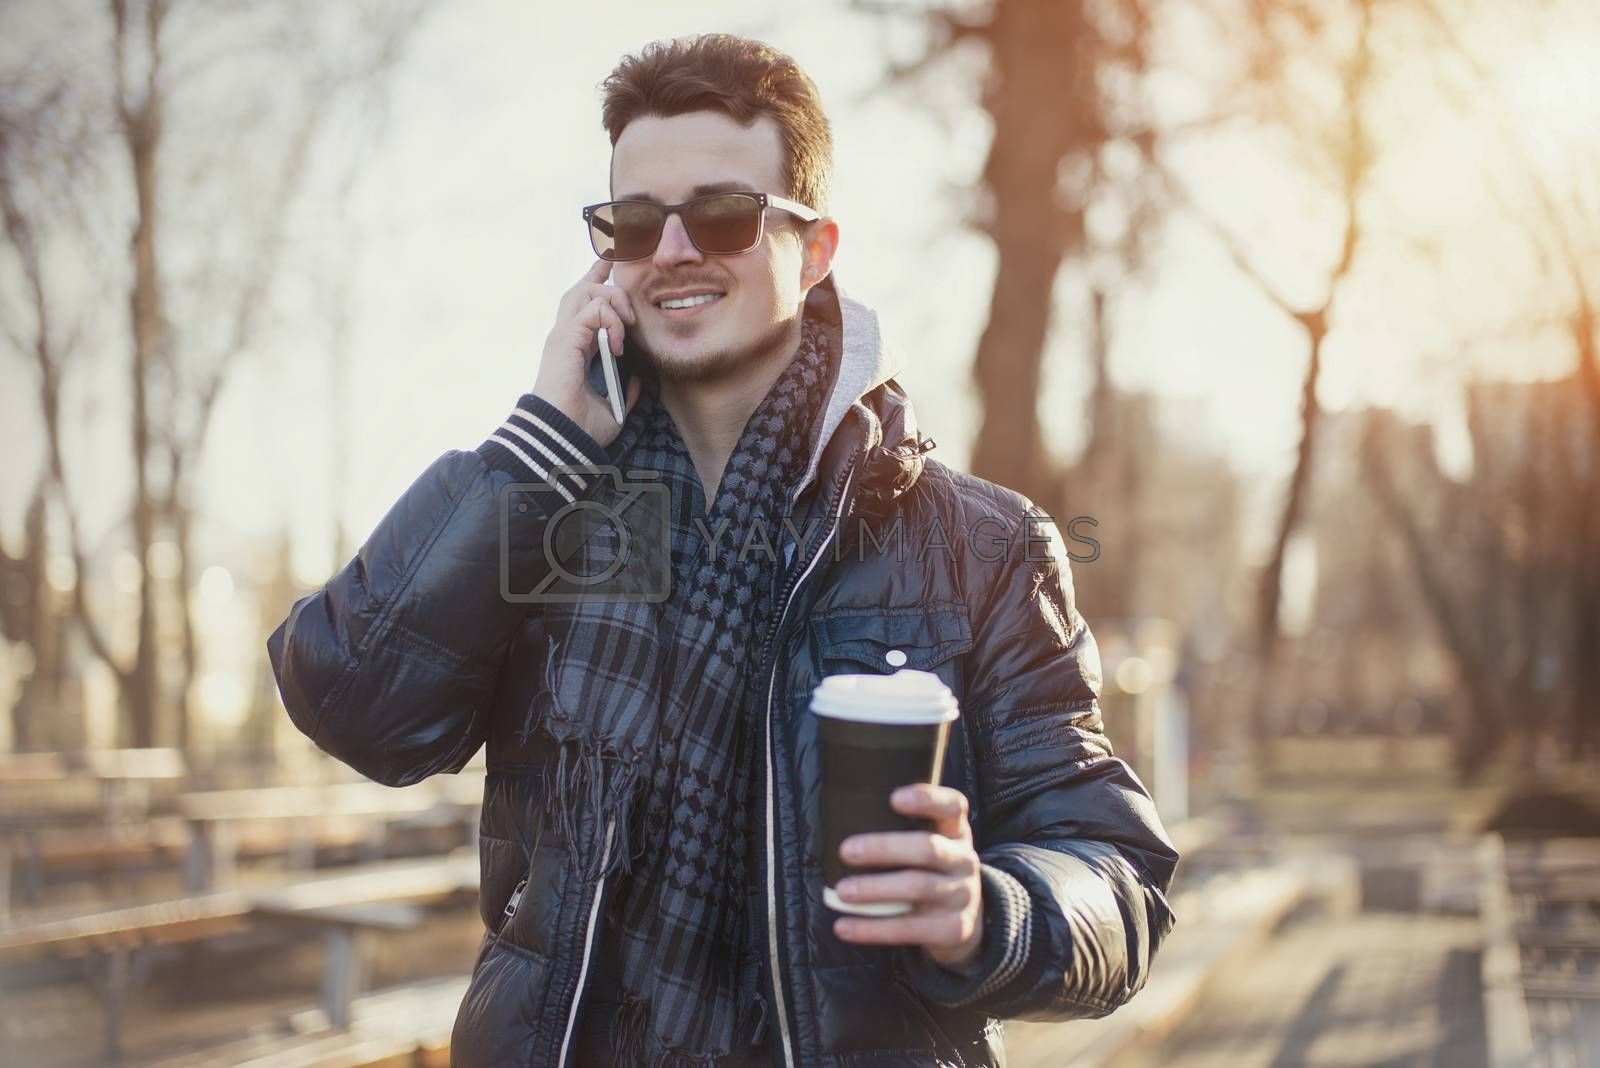 Portrait of attractive man in wearing jacket using mobile phone and holding takeaway coffee while walking through city street.